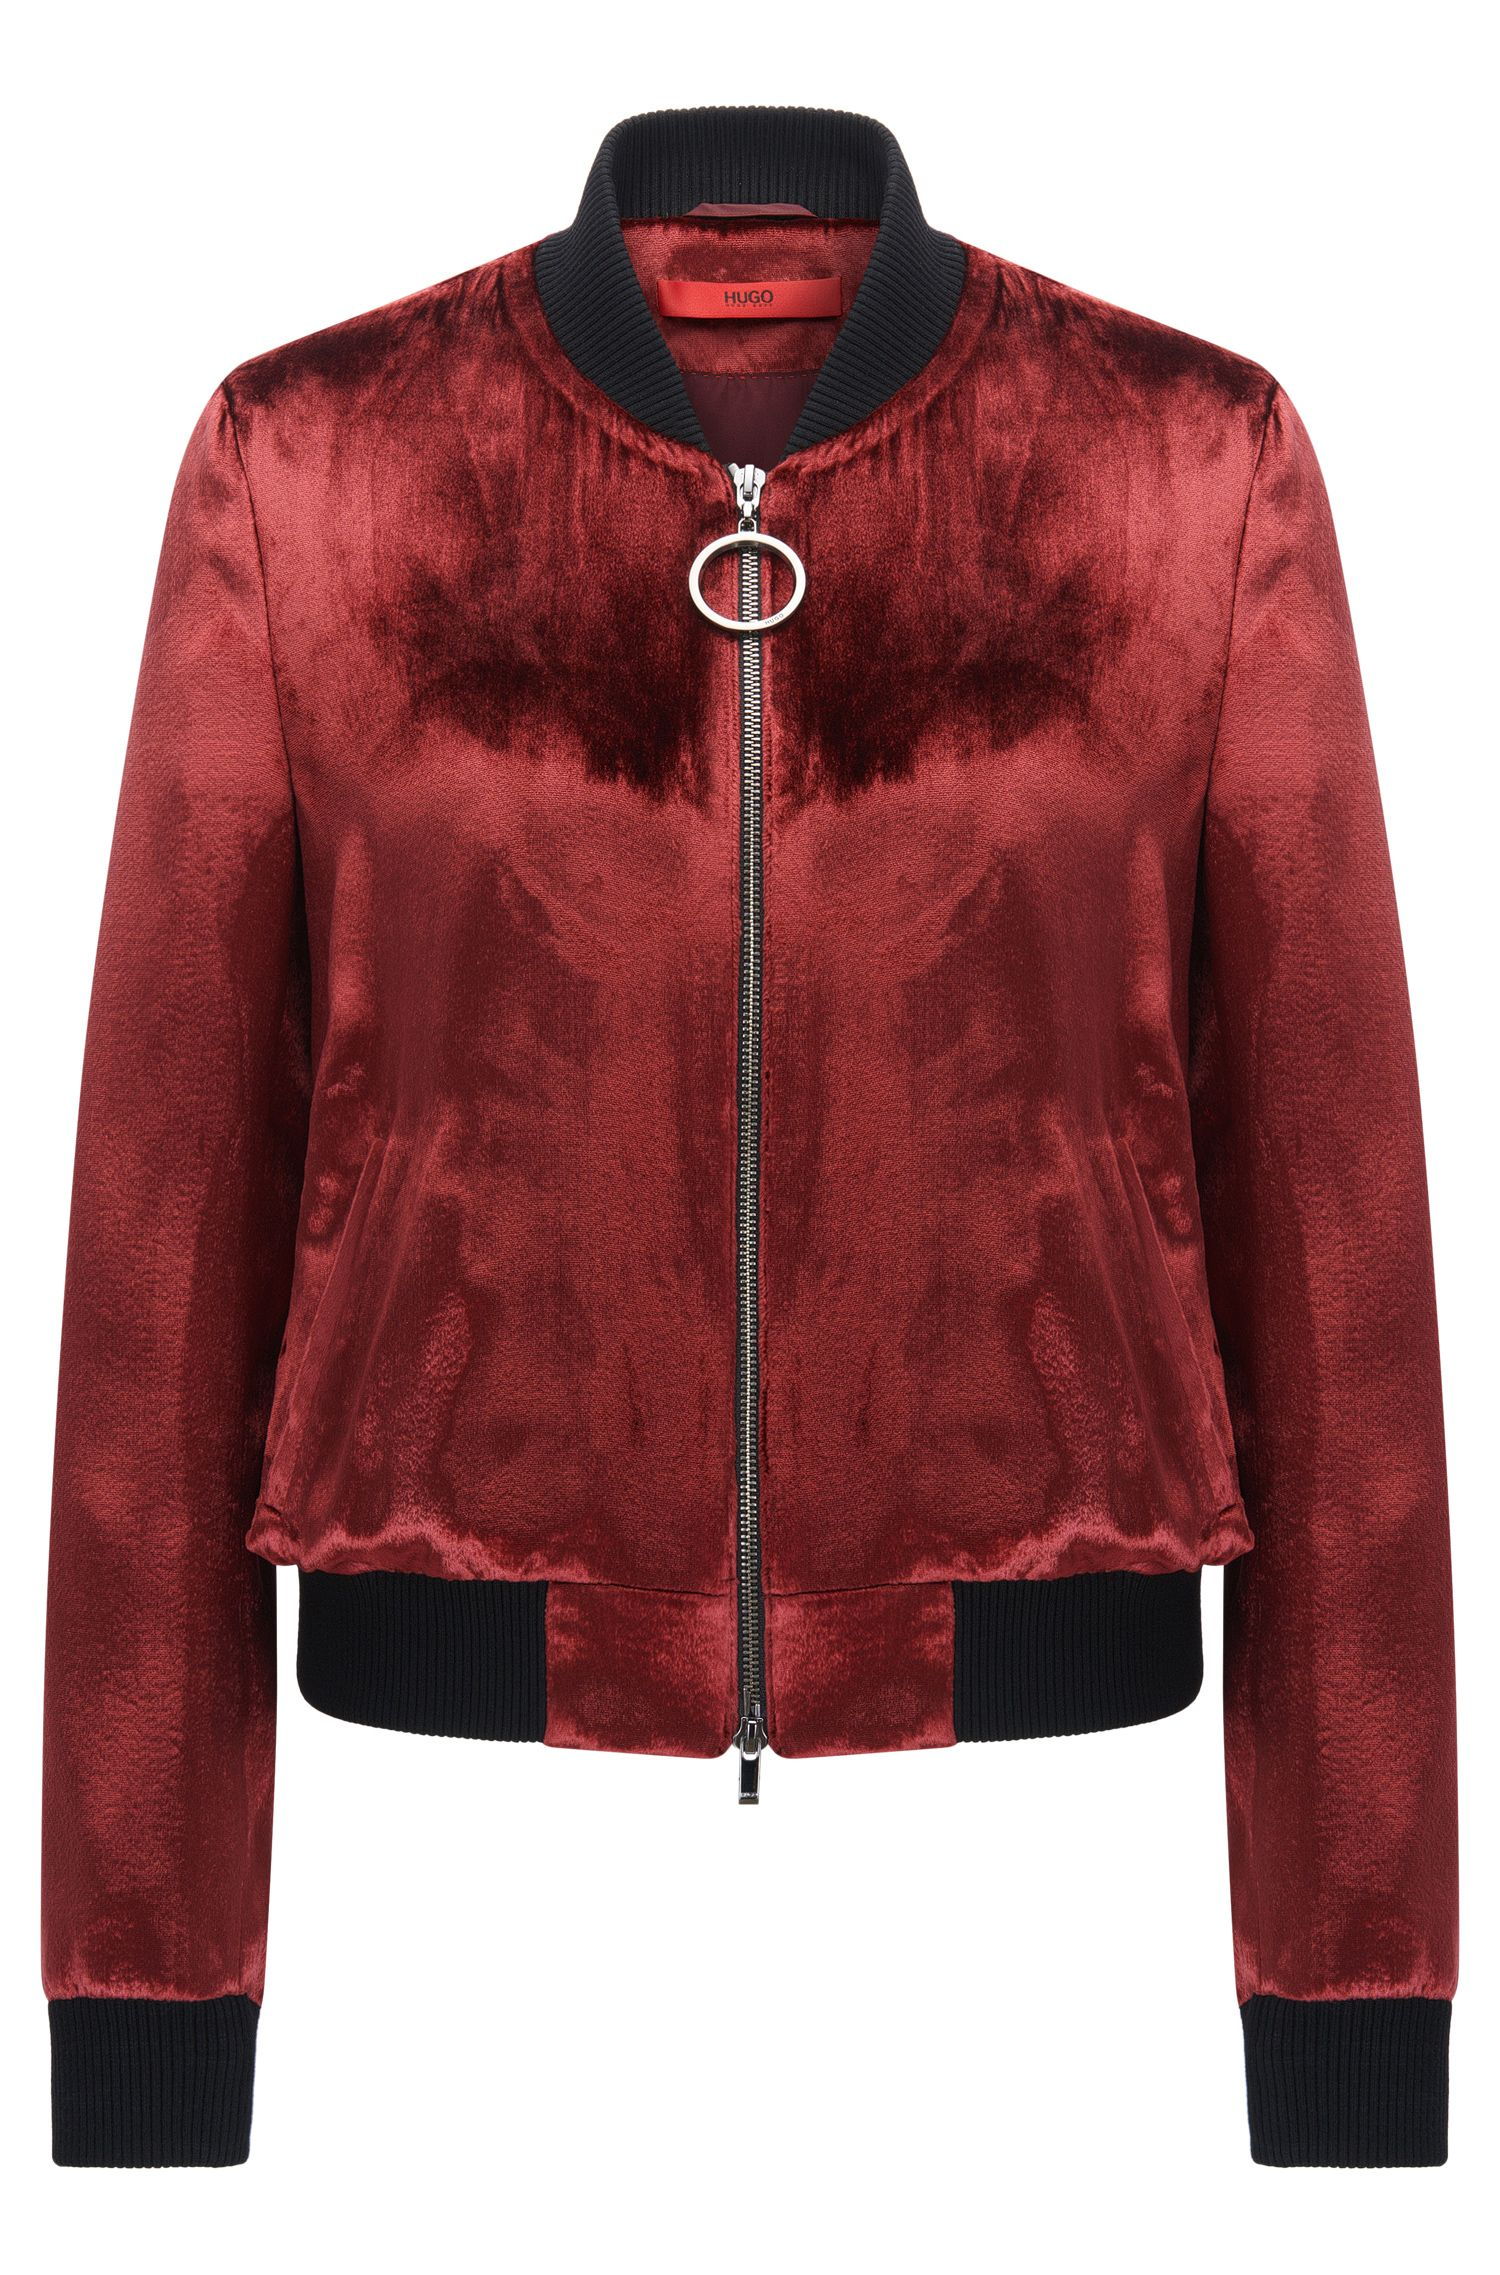 Velvet bomber jacket in a regular fit